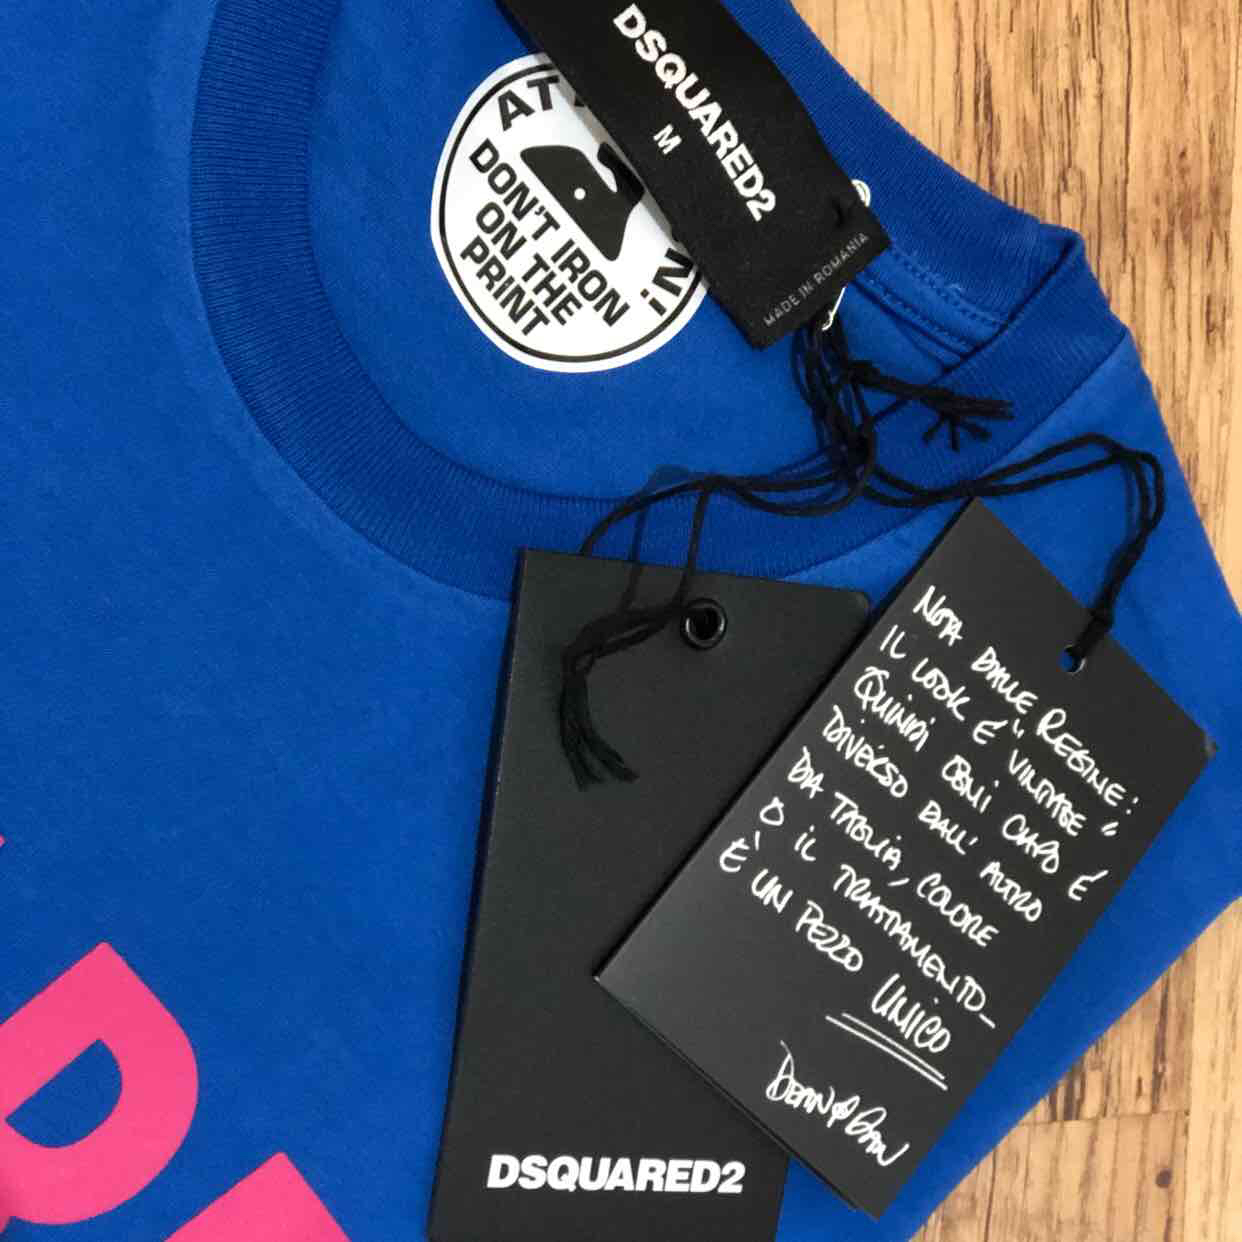 Dsquared2 men's arch logo t-shirt in blue and pink Retail price £160 my price £85. Sizes available M,L,XLDsquared22